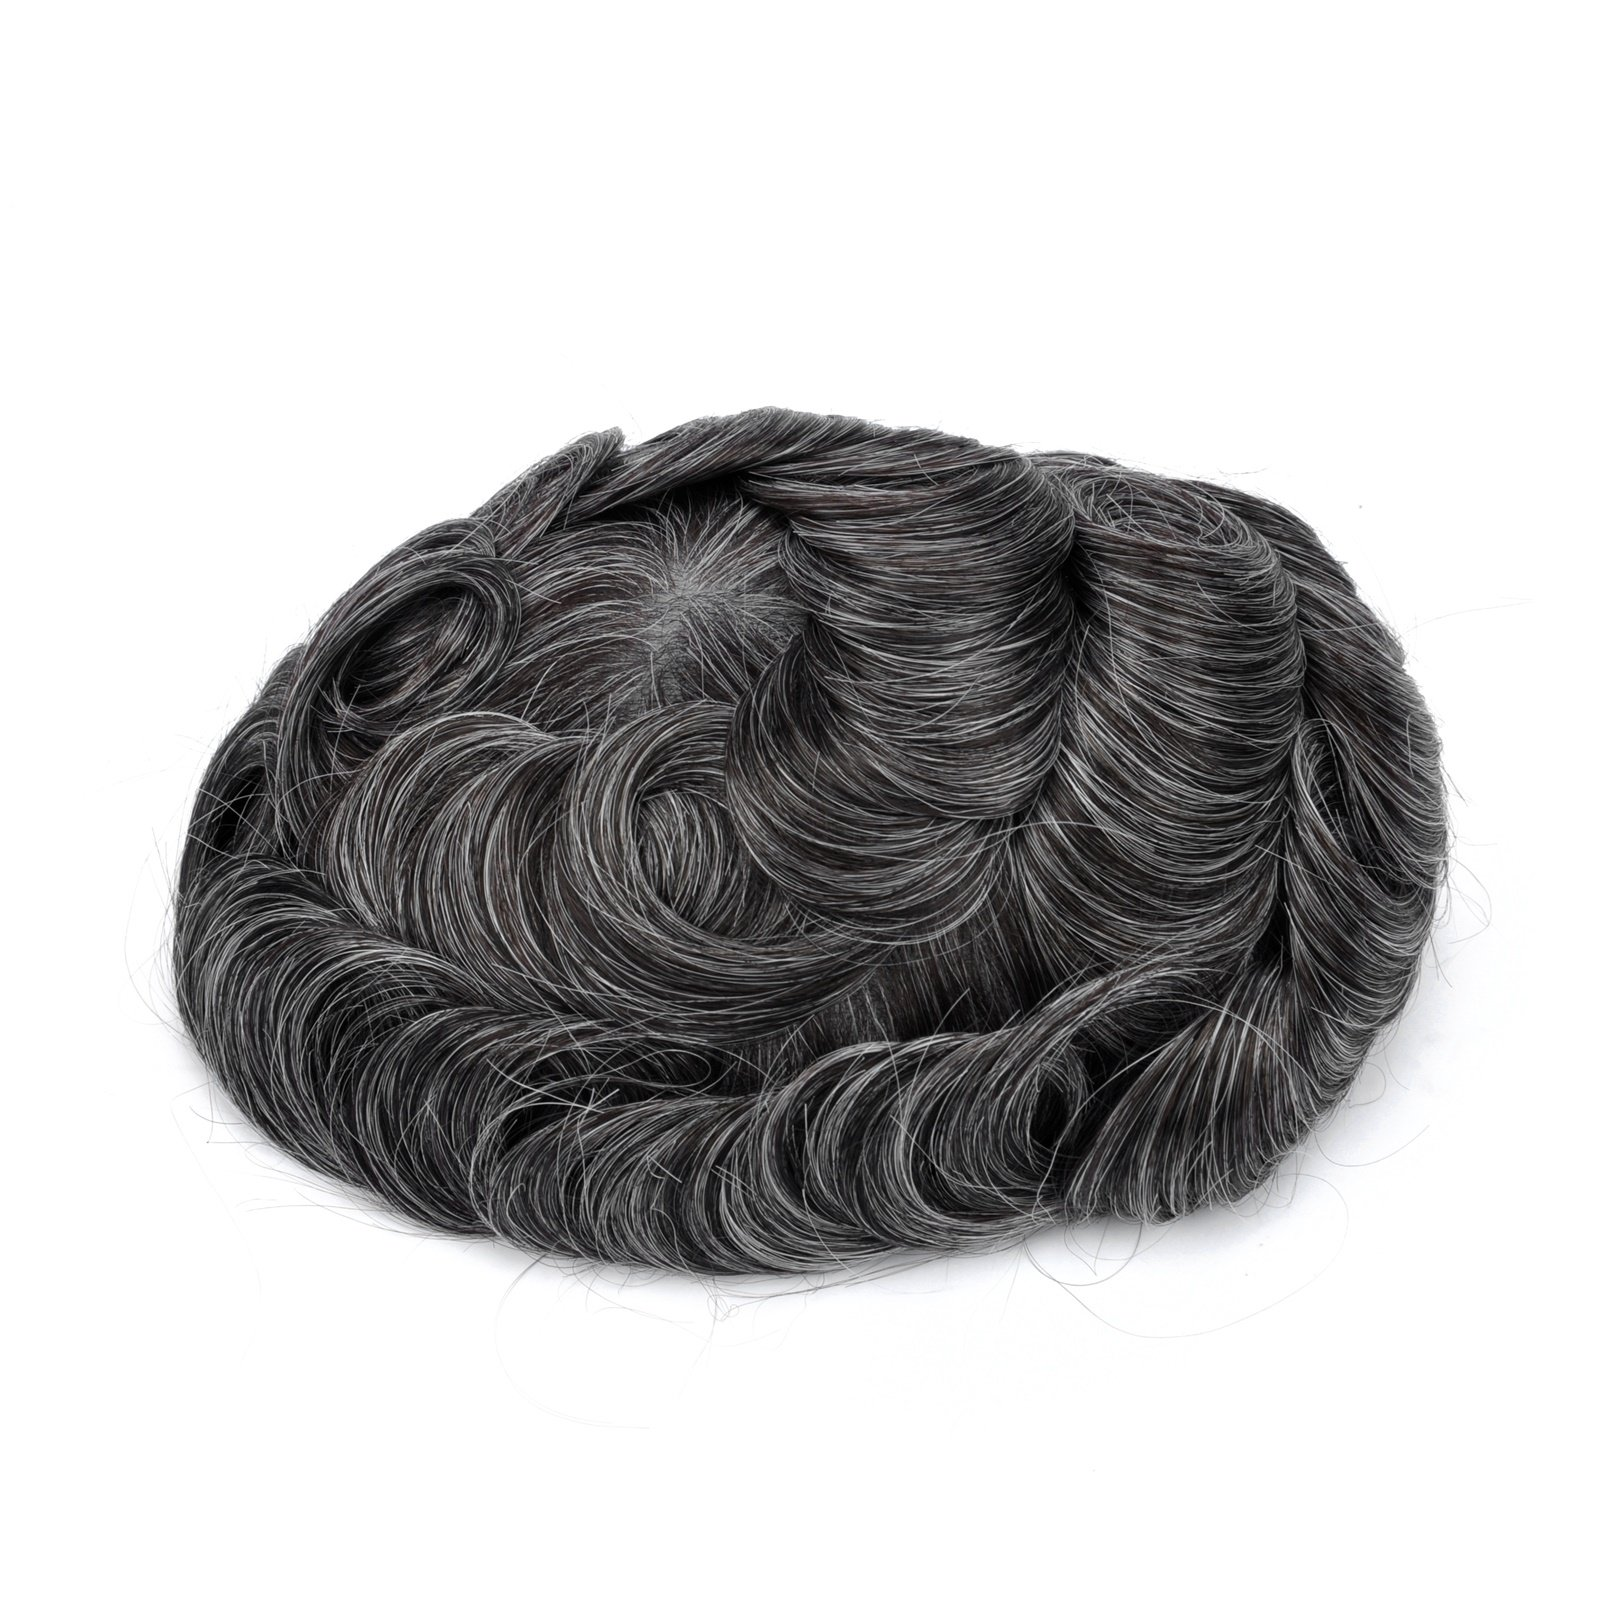 Mens Toupee Hairpiece Mirage Human Hair Systems 1B30#